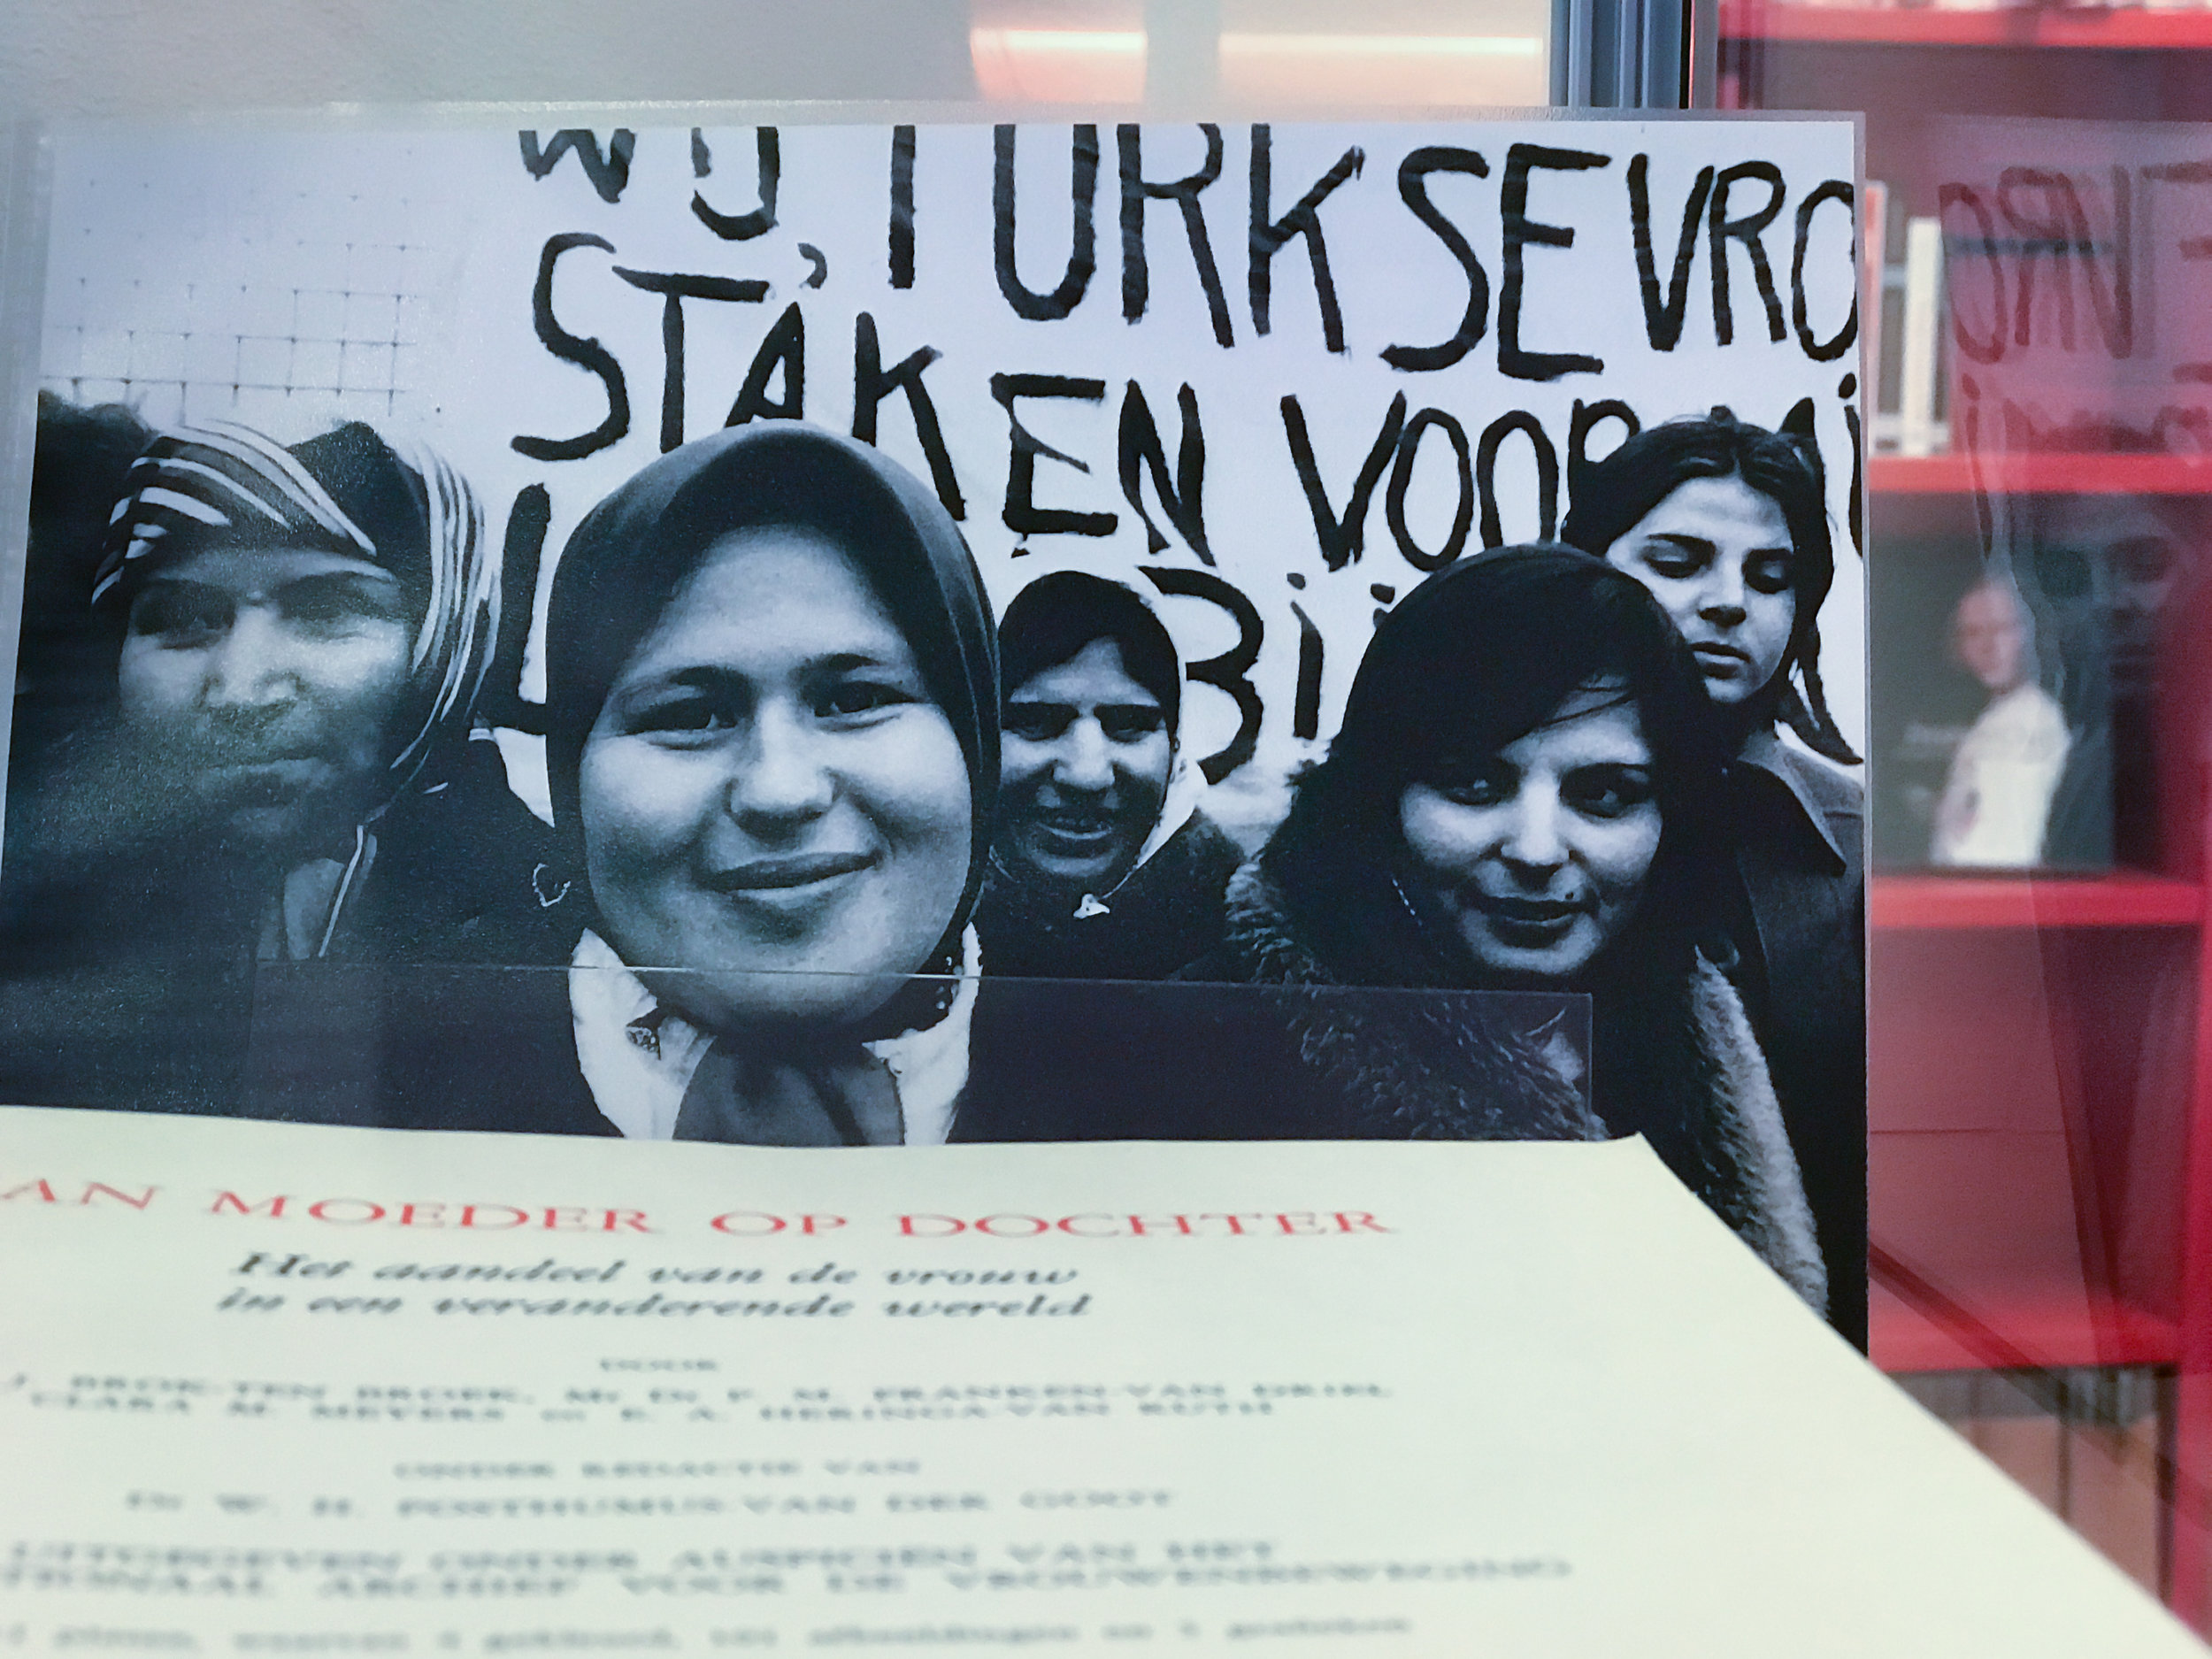 the future is female, then - In 1978, photographer Bertien van Manen, who was capturing the lives of female immigrant workers, photographed the first ever strike of Turkish women in the Netherlands at a chicken factory in Almelo. The women had to work 80 hours per week, were severely underpaid and underwent serious physical pain because they had to process the sizzling hot chicken meat with their bare hands.